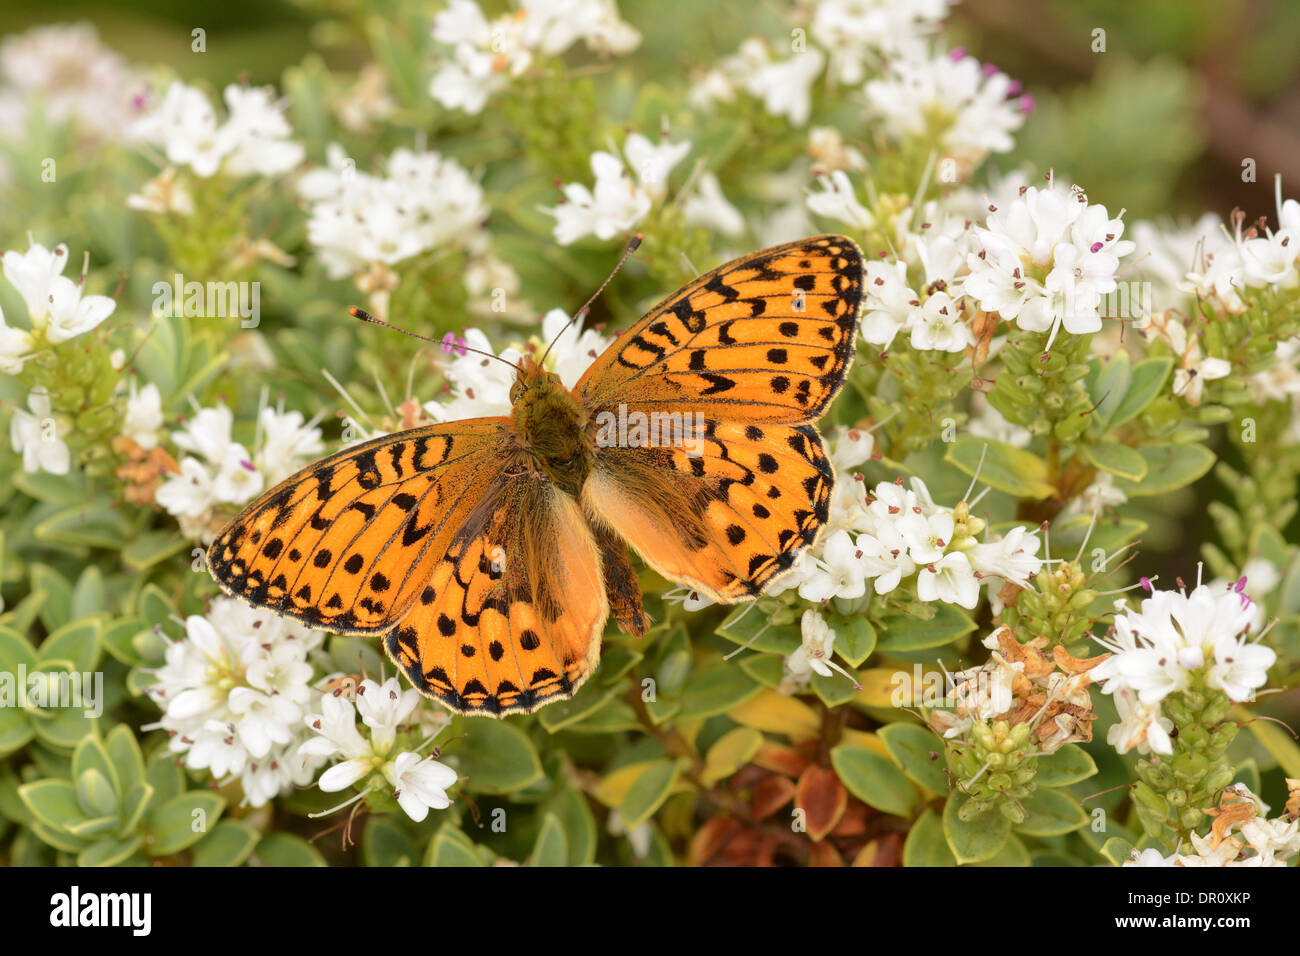 Dark Green Fritillary Butterfly (Argynnis aglaja) adult with wings spread, Oxfordshire, England, July - Stock Image